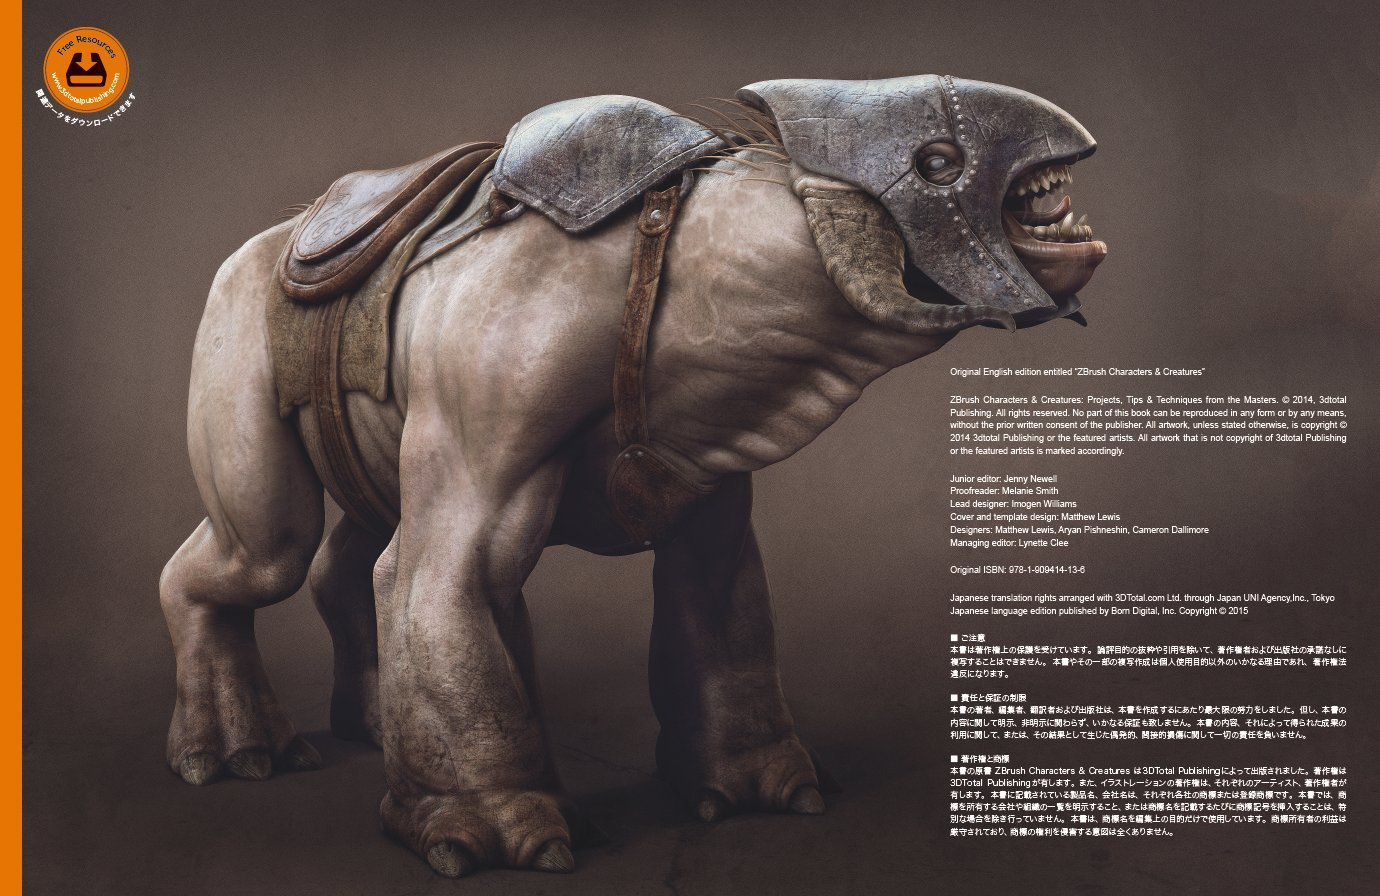 ZBRUSH CHARACTERS AND CREATURES PDF DOWNLOAD